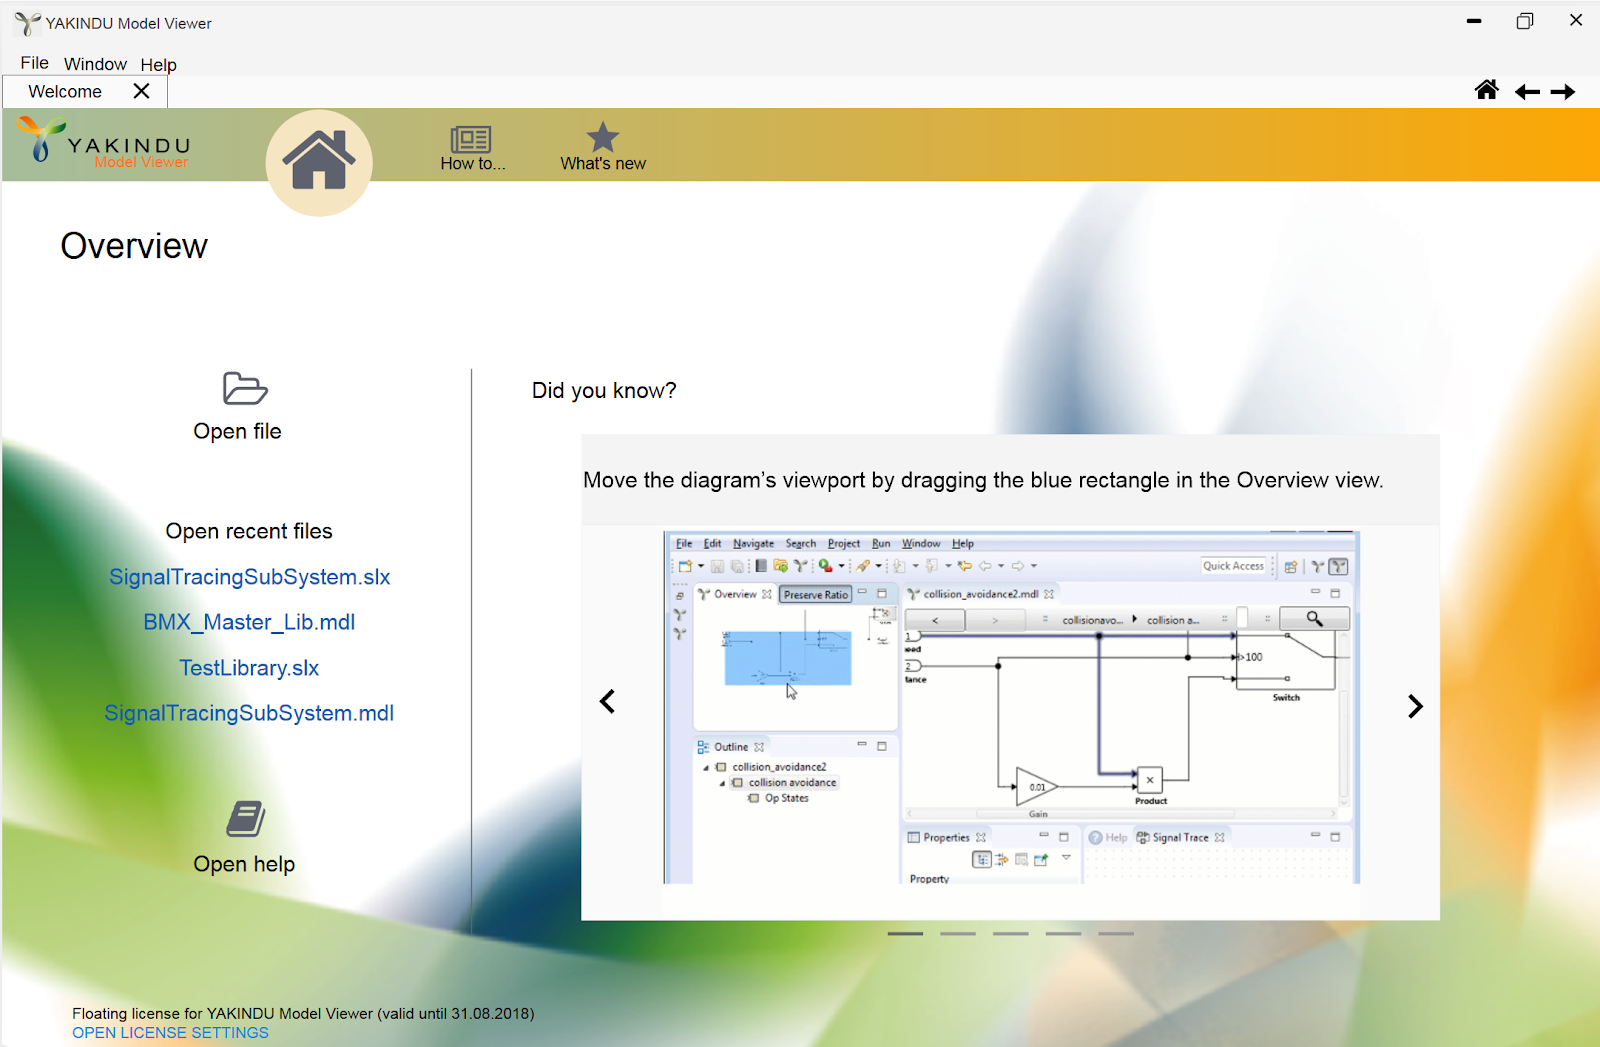 Prototype of the welcome page for YAKINDU Model Viewer.